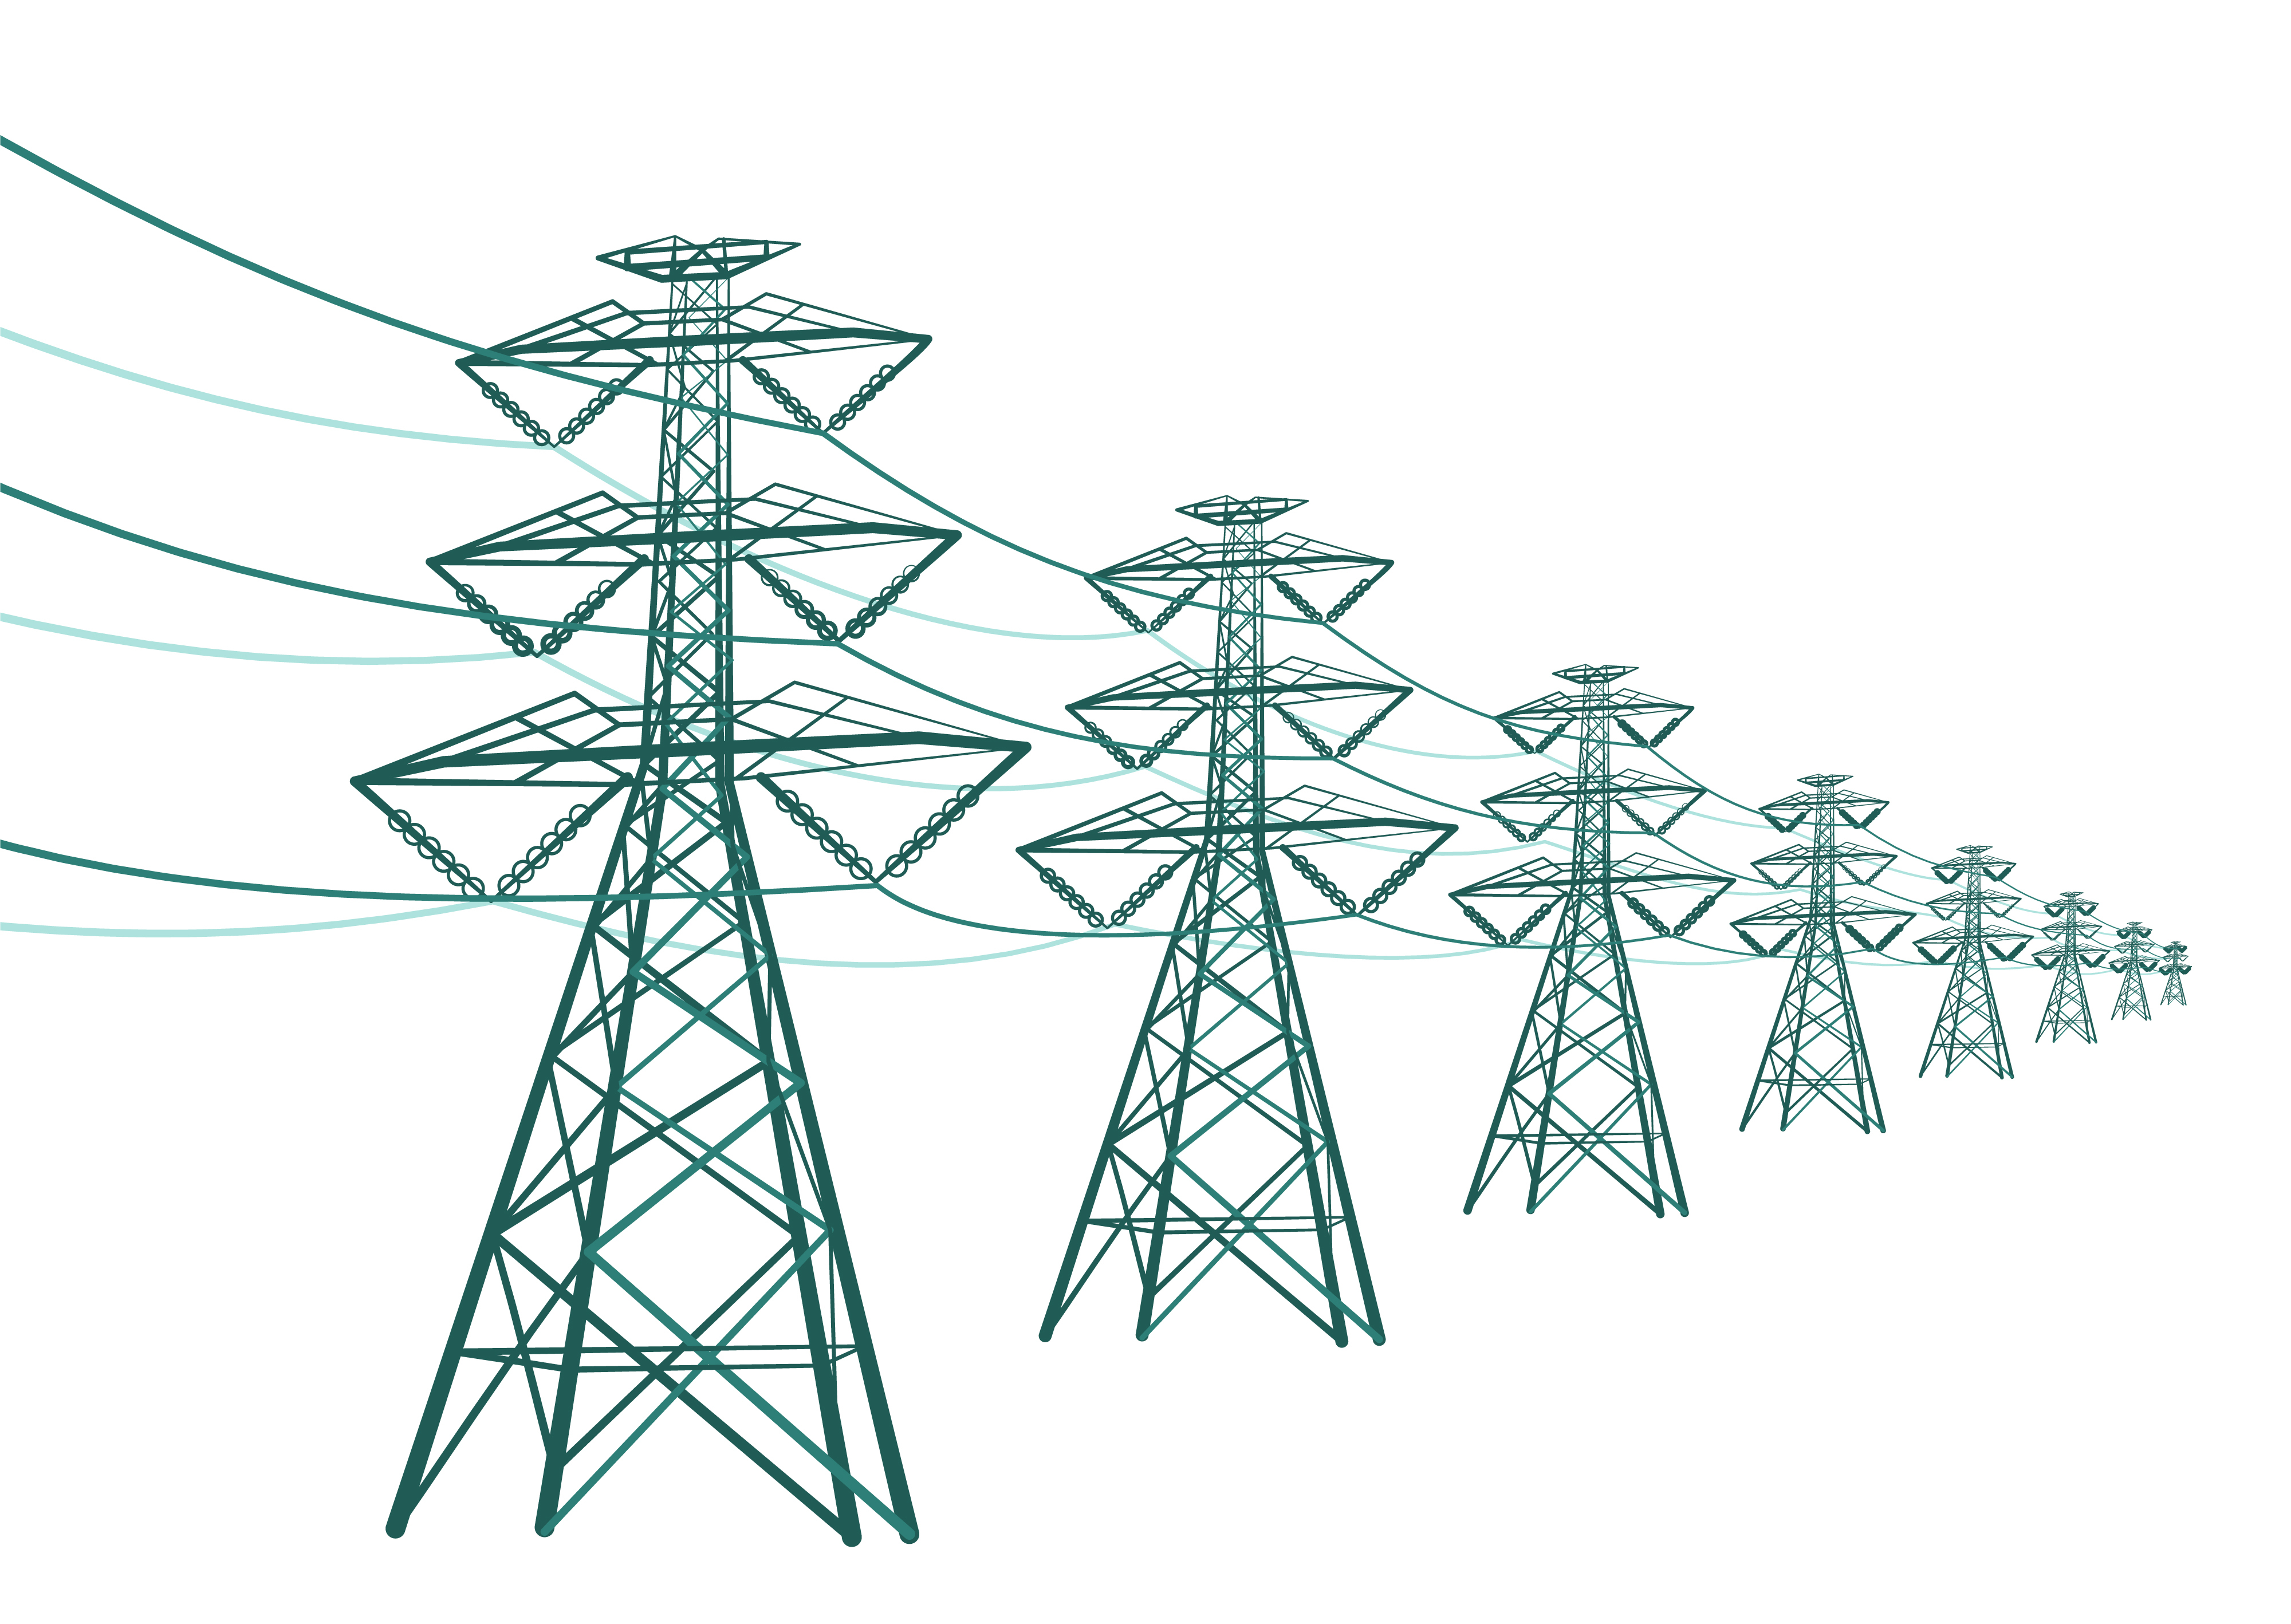 shutterstock_139354148 - Vector drawing of transmission lines